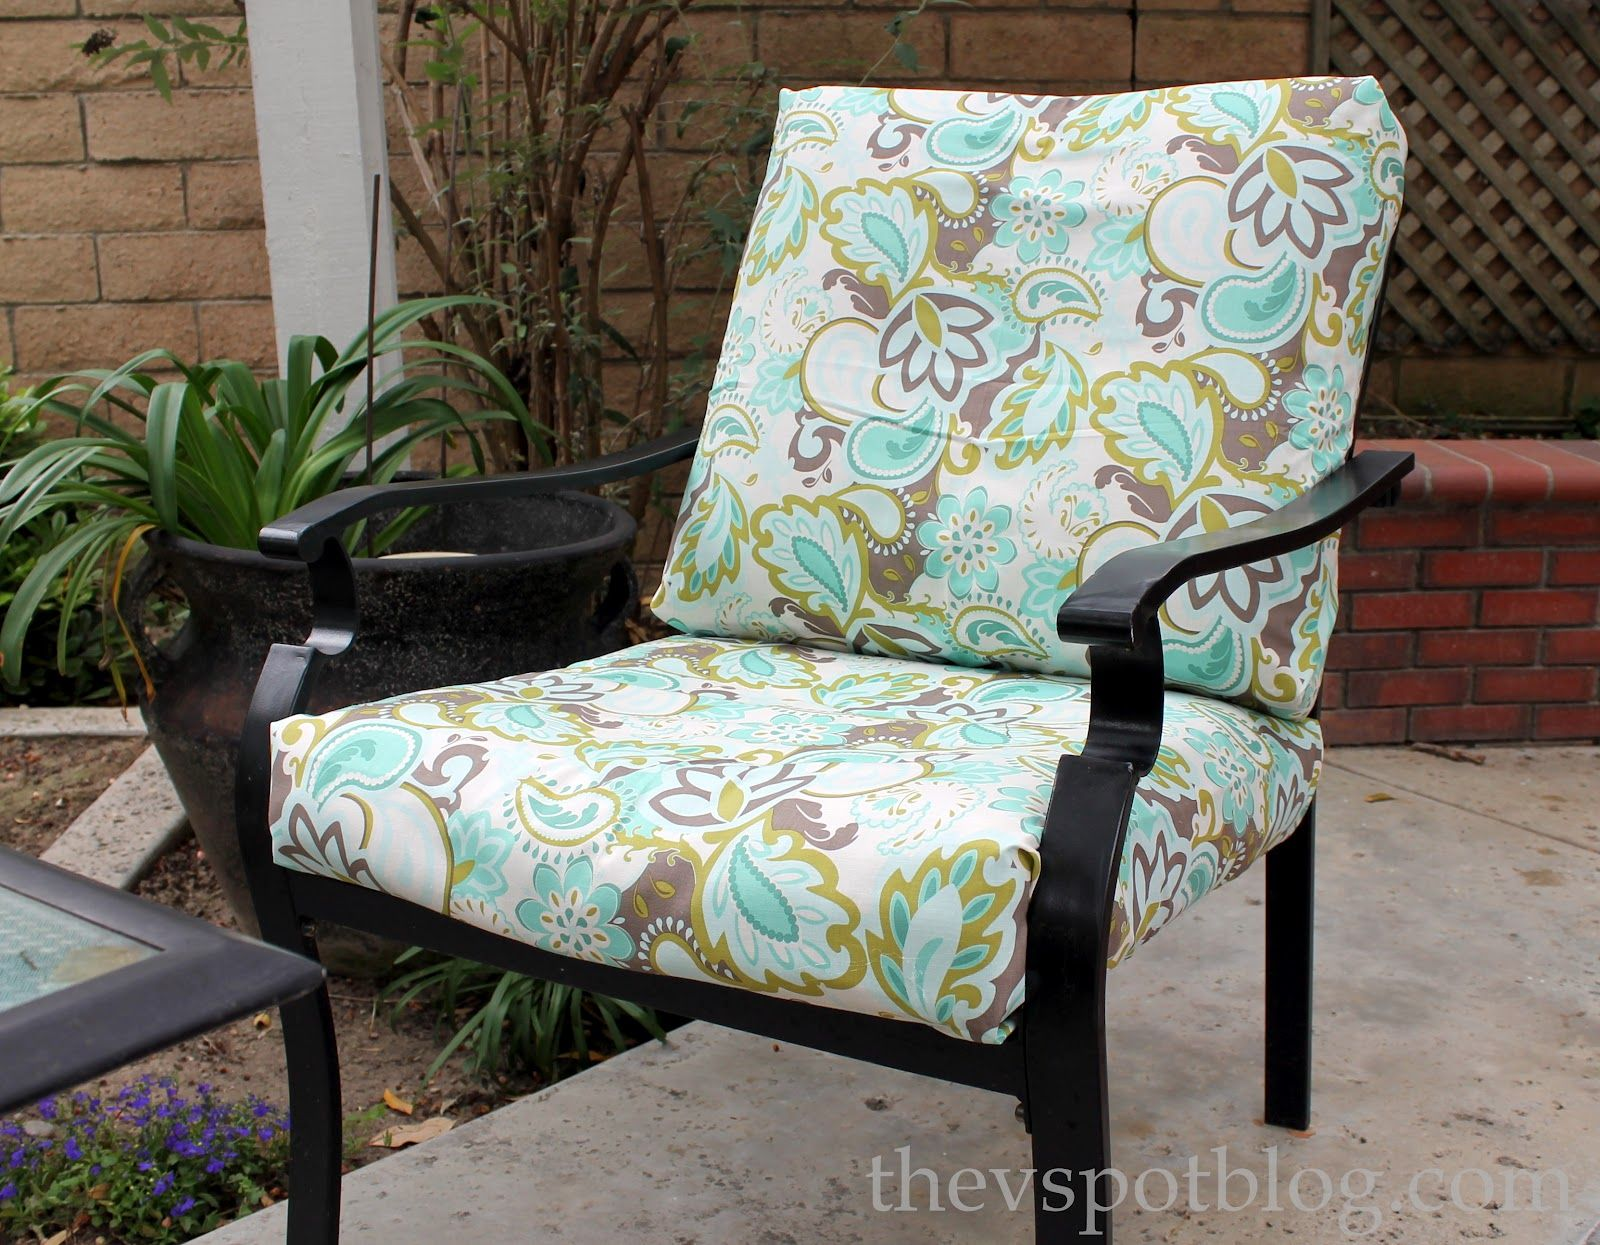 No Sew Project  How to recover your outdoor cushions using fabric and a  glue gun  Patio ChairsOutdoor  No Sew Project  How to recover your outdoor cushions using fabric  . Outdoor Cushions For Lounge Chairs. Home Design Ideas